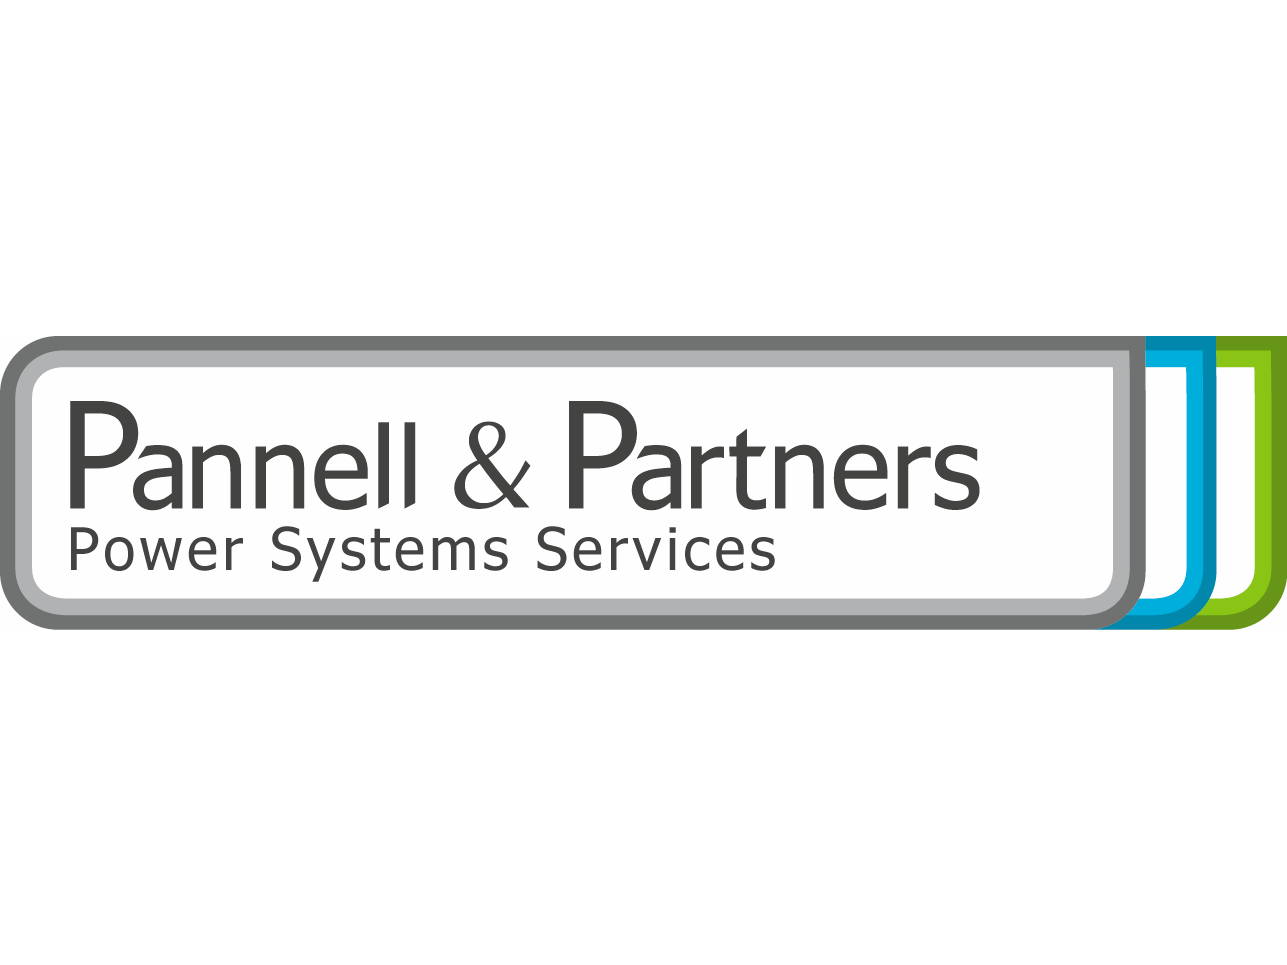 Pannell & Partners